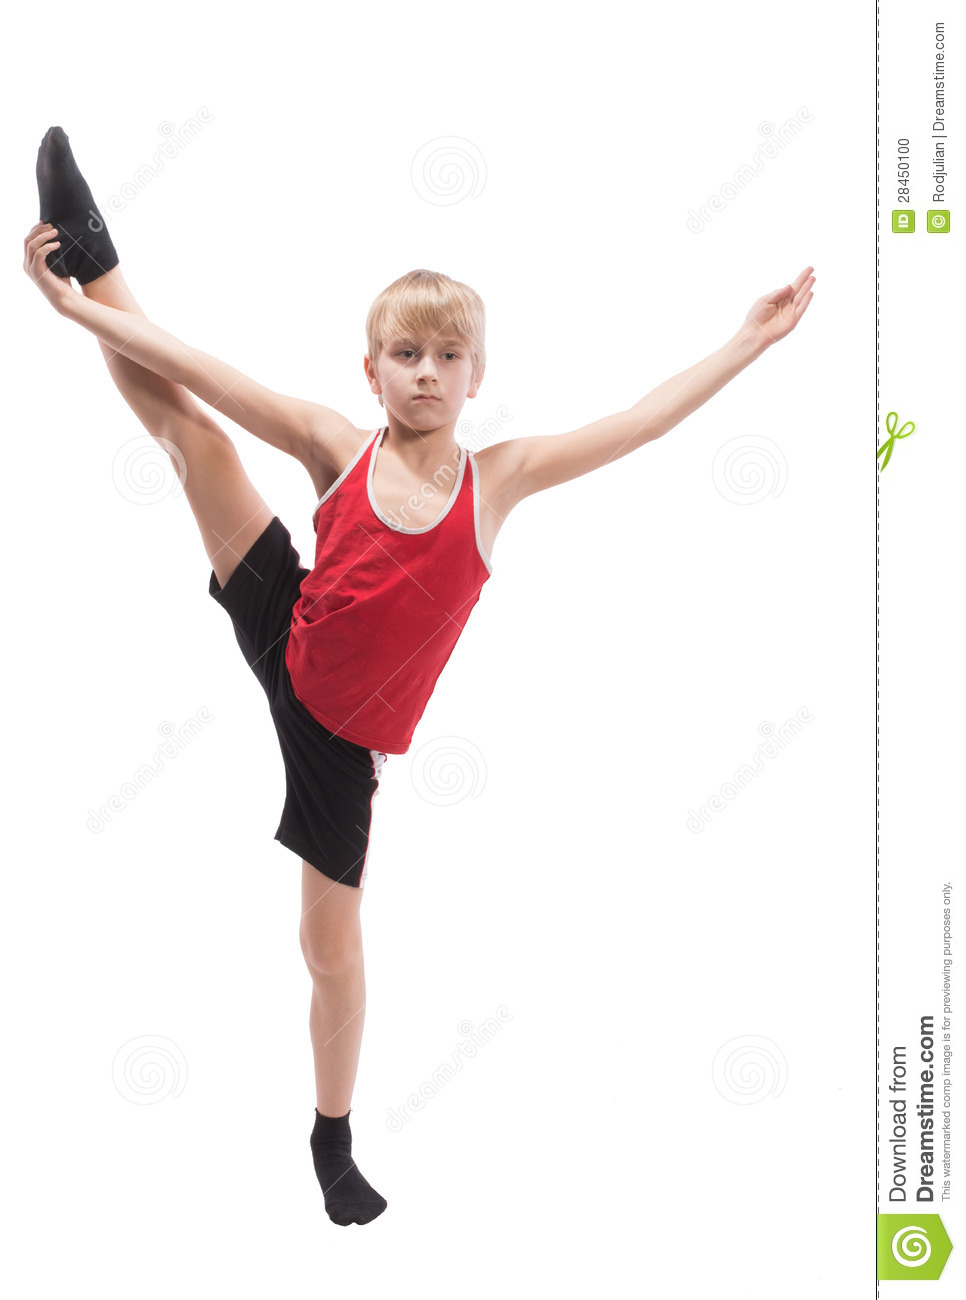 Ten-year-old boy doing vertical splits, on white background.